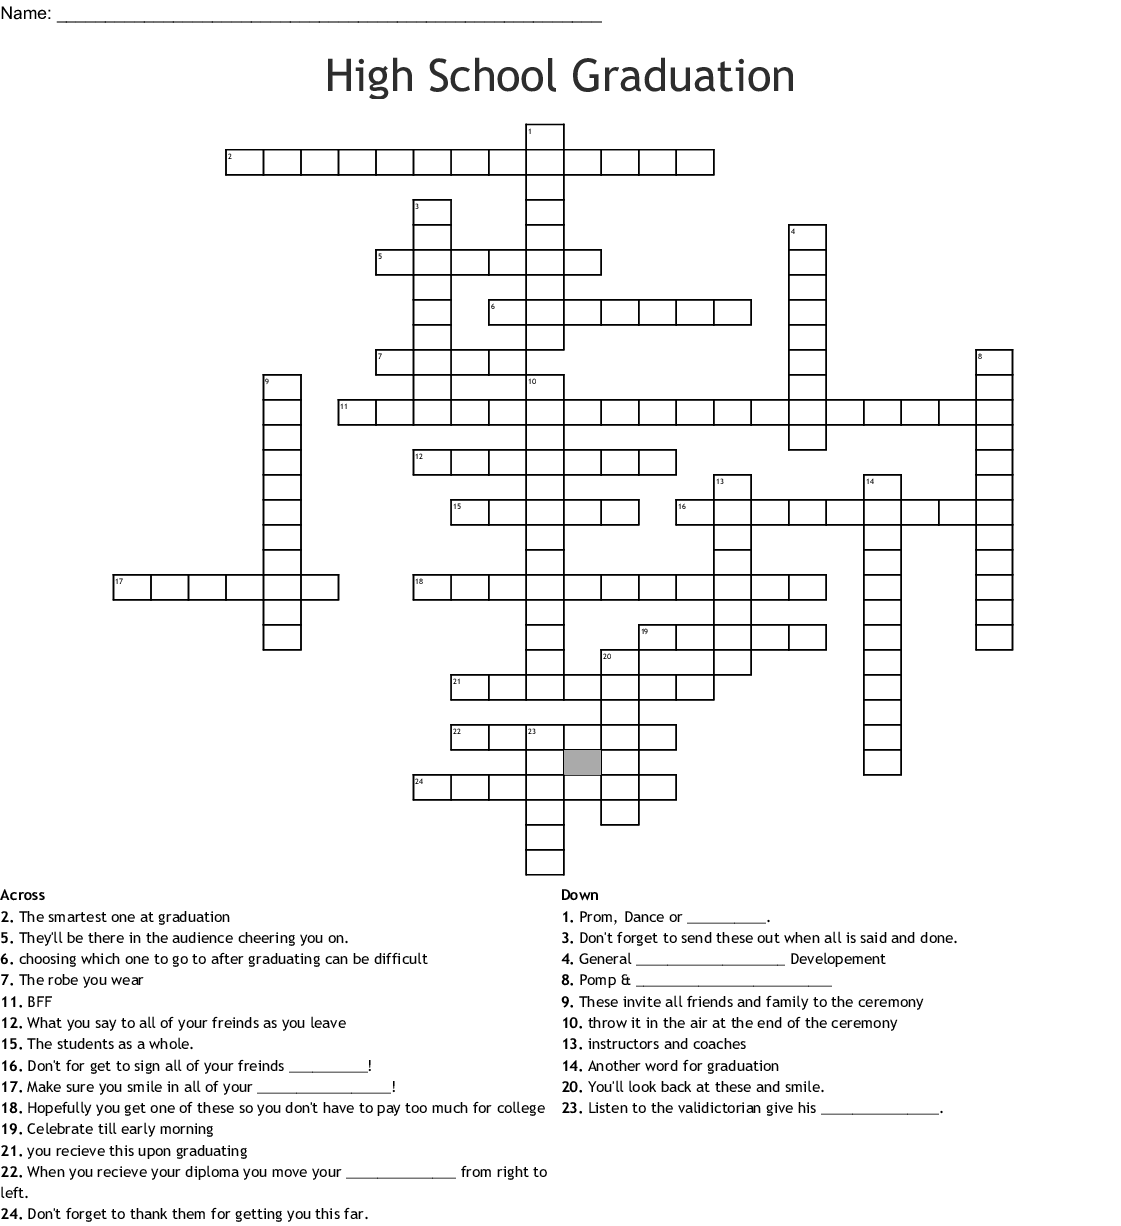 Crossword Clue Answers Back